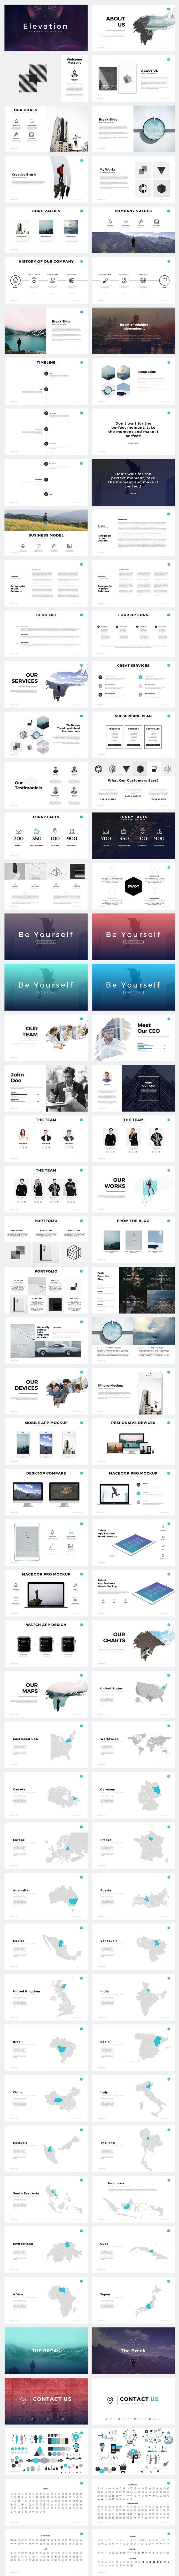 Elevation Google Slides Template by SlidePro on @creativemarket #ad